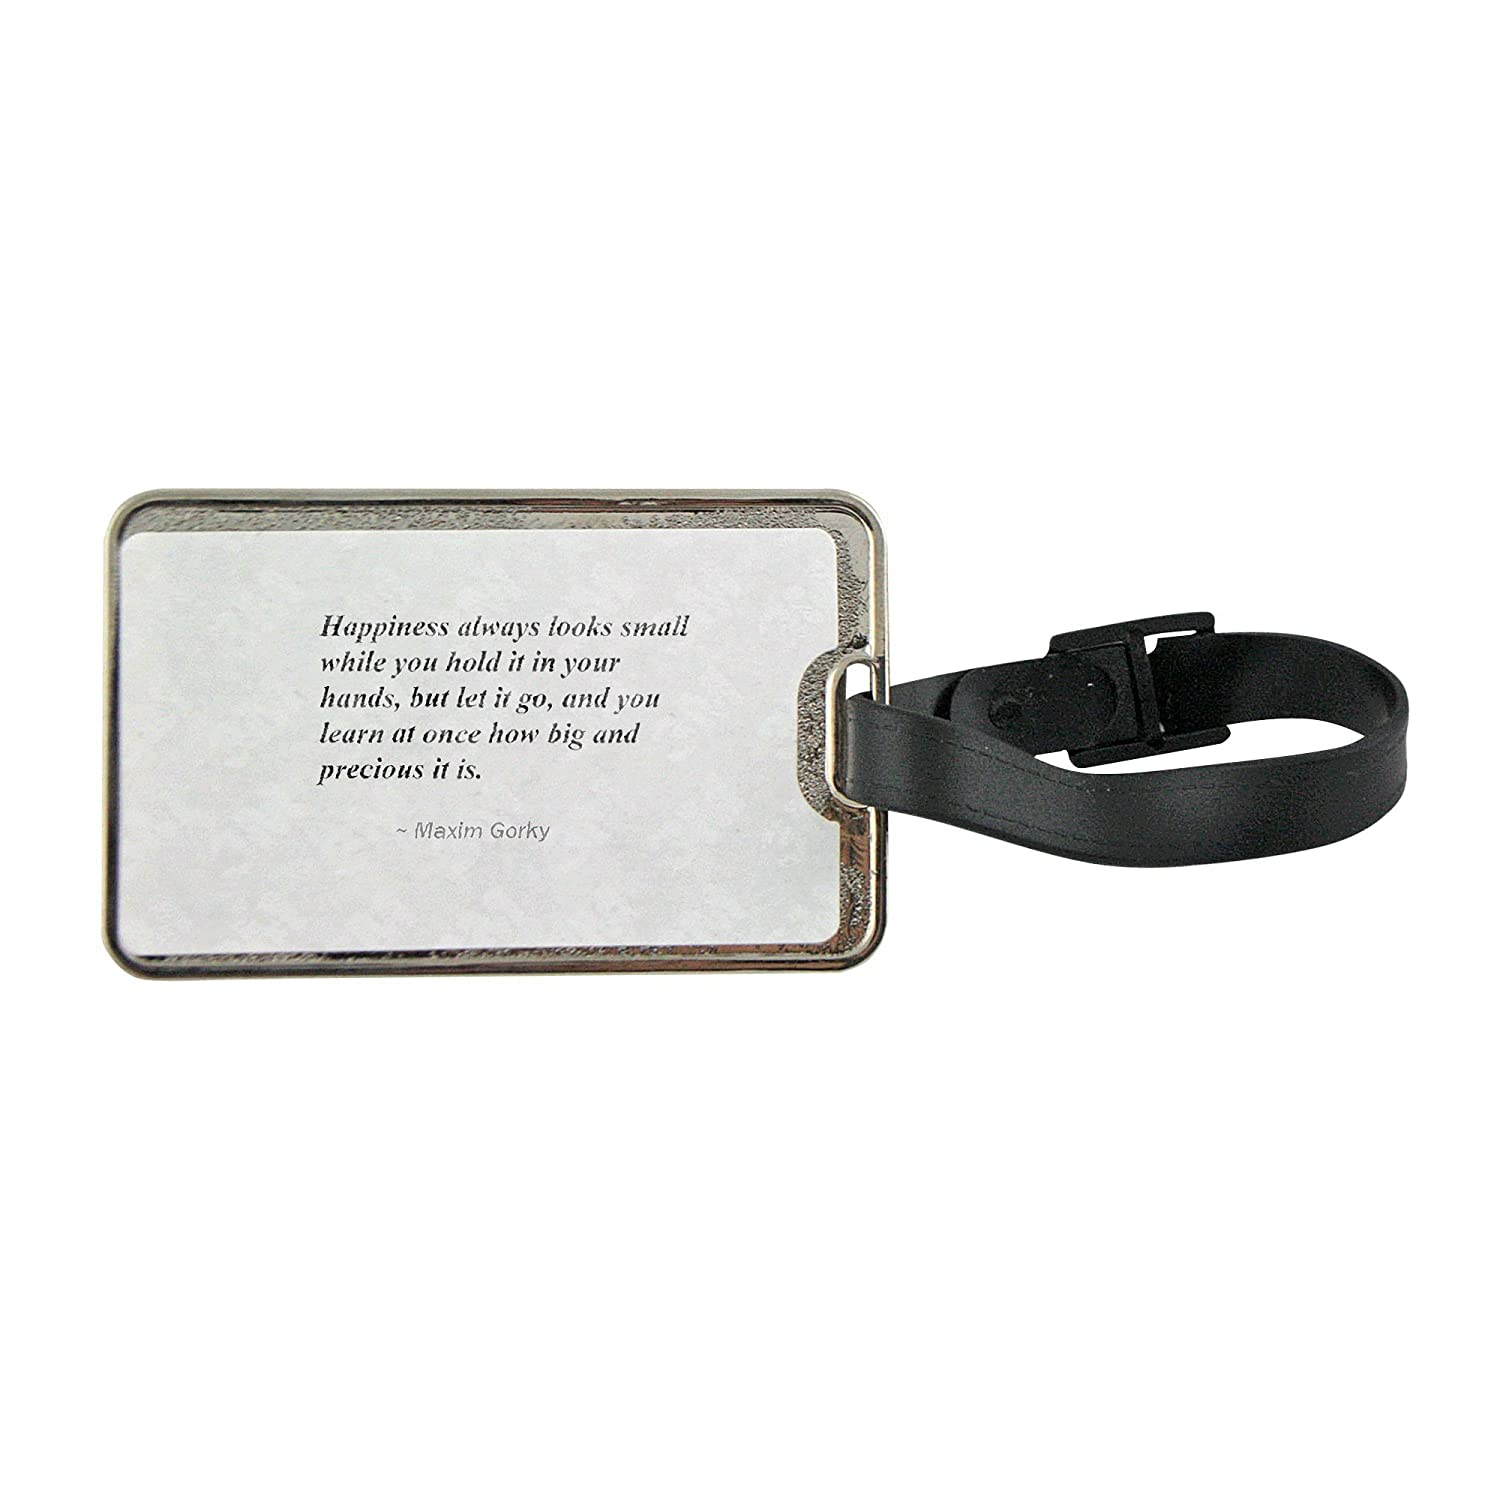 low-cost Metal luggage tag with Happiness always looks small while